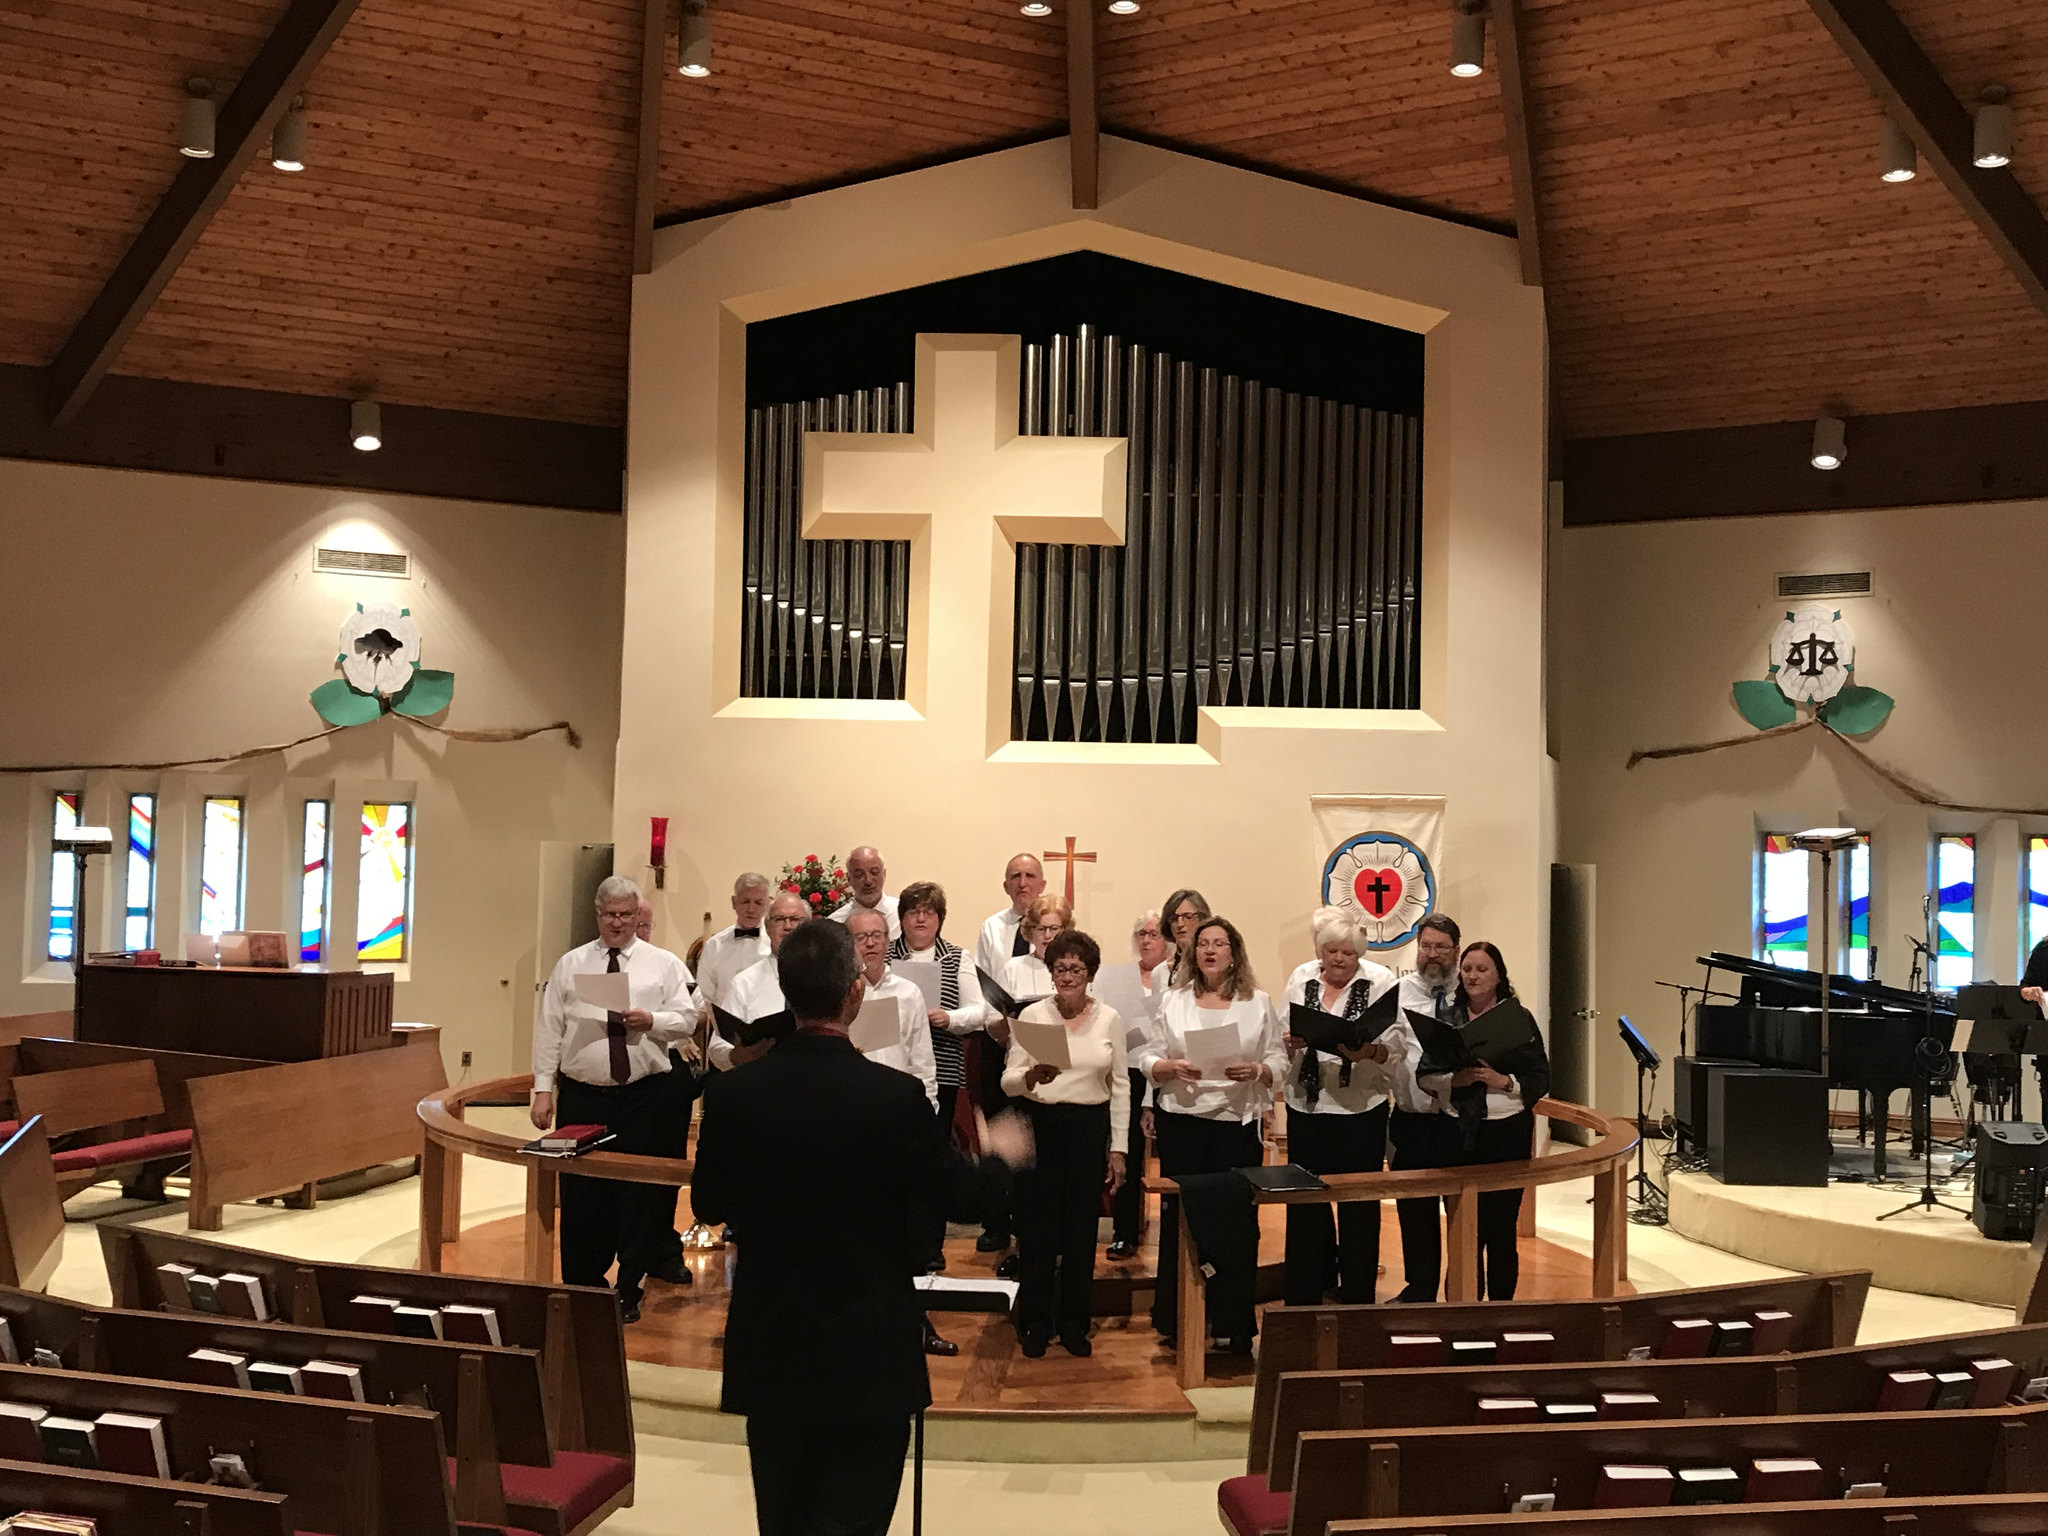 Emmanuel Lutheran Church Worship Music